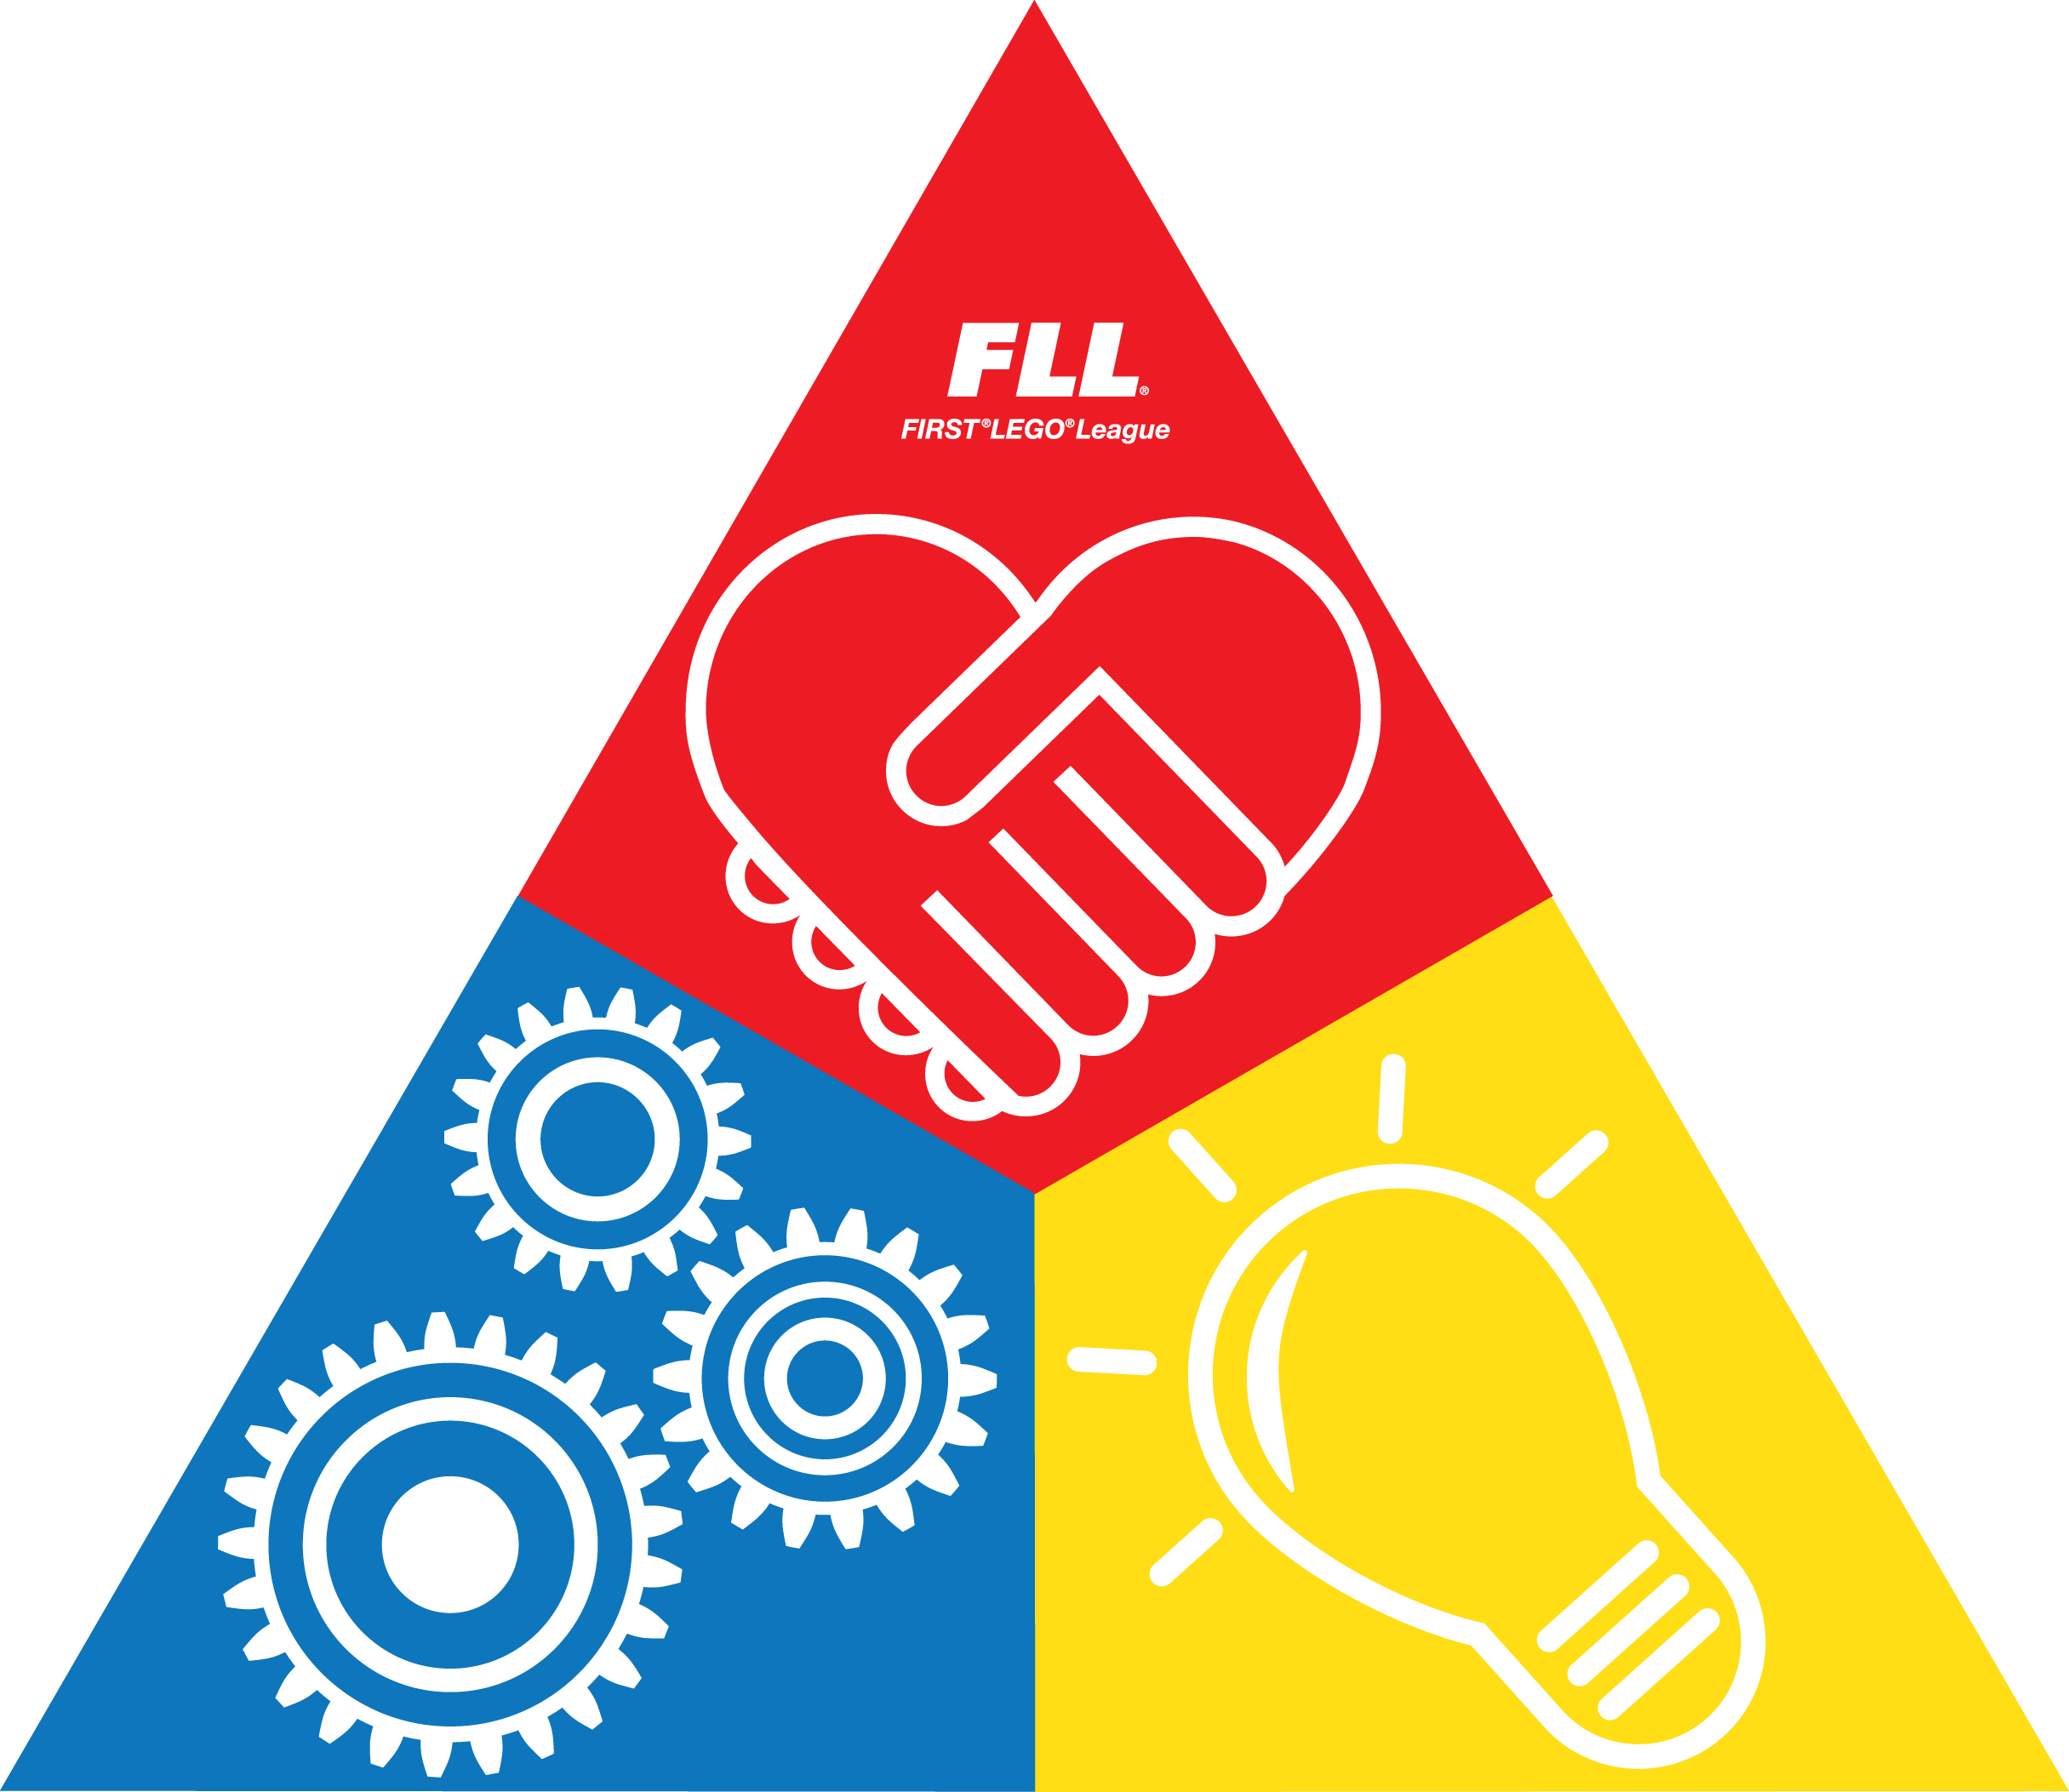 FLL triangle